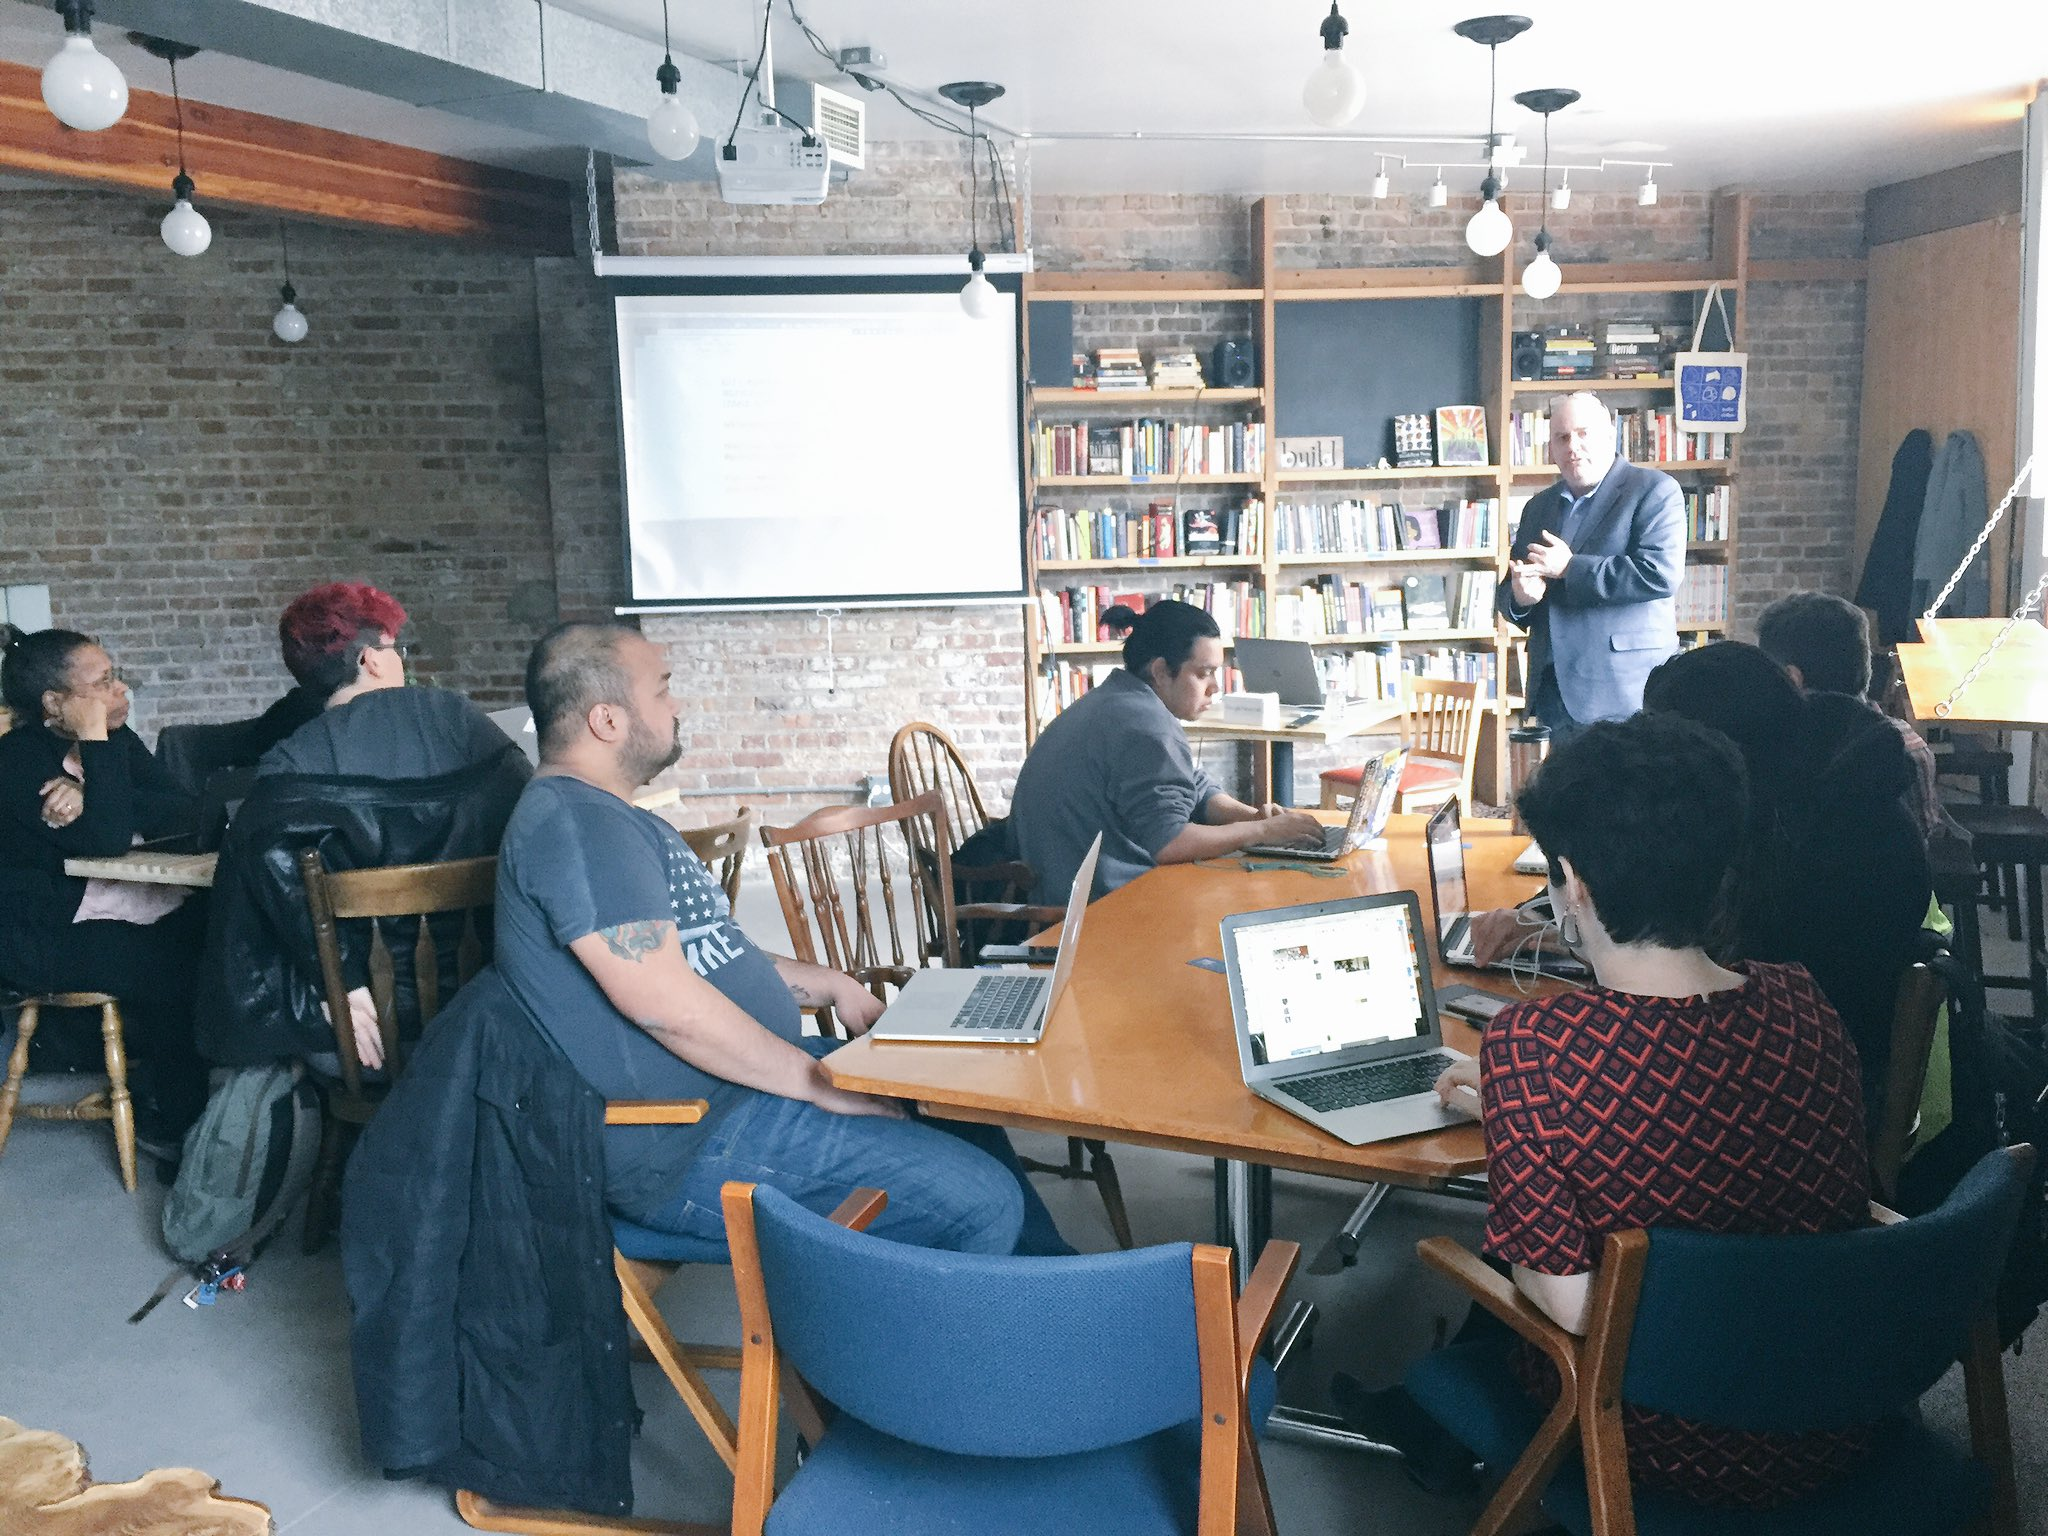 We're getting started at #PublicNewsroom #11: Google Tools w/ @journtoolbox--come for all or parts of the workshop & folo #googlecitybureau https://t.co/NlSEJ40X5H